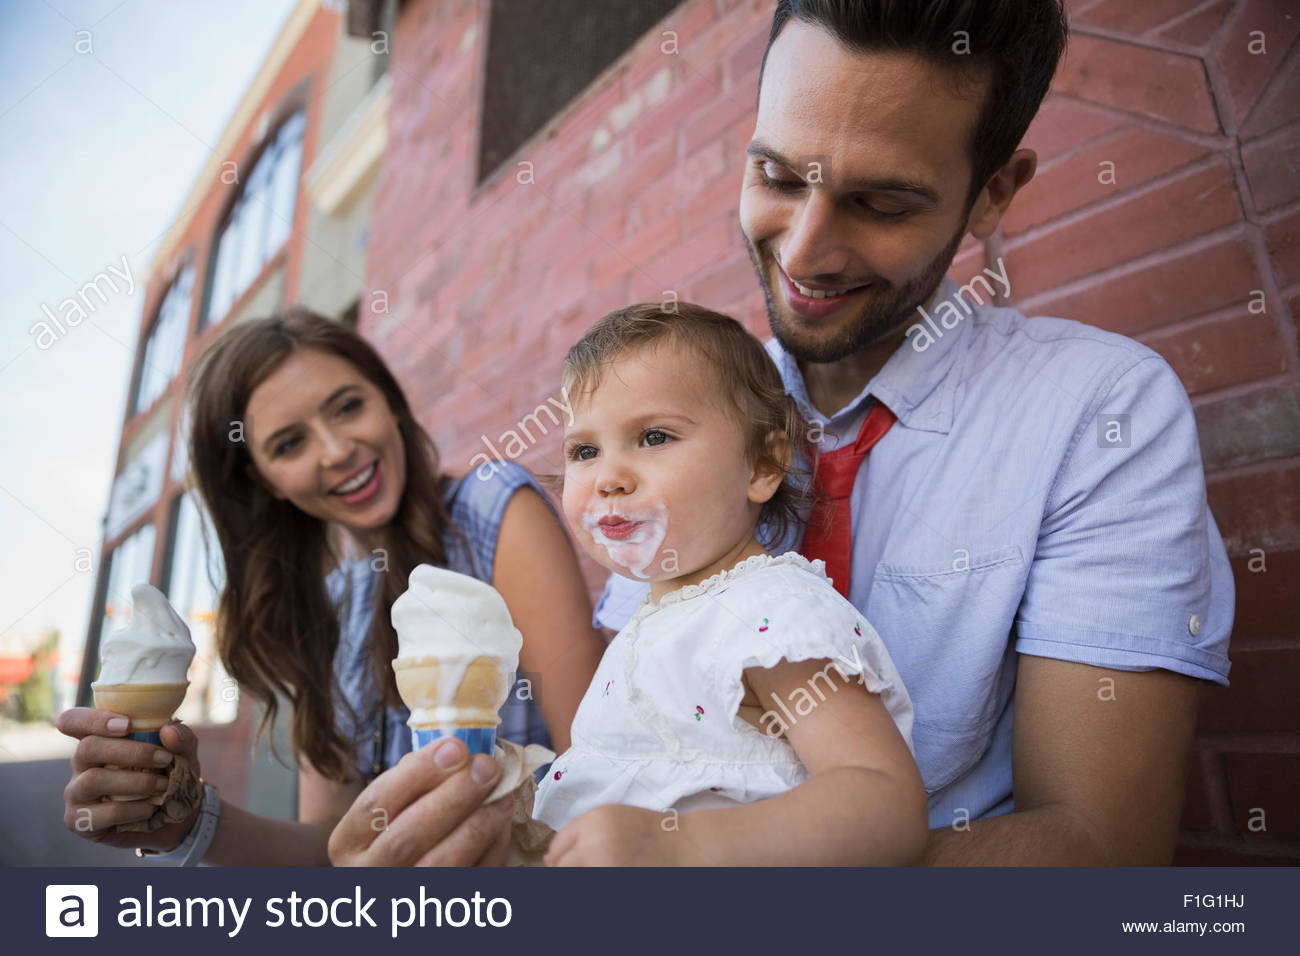 Father holding daughter with messy ice cream face - Stock Image